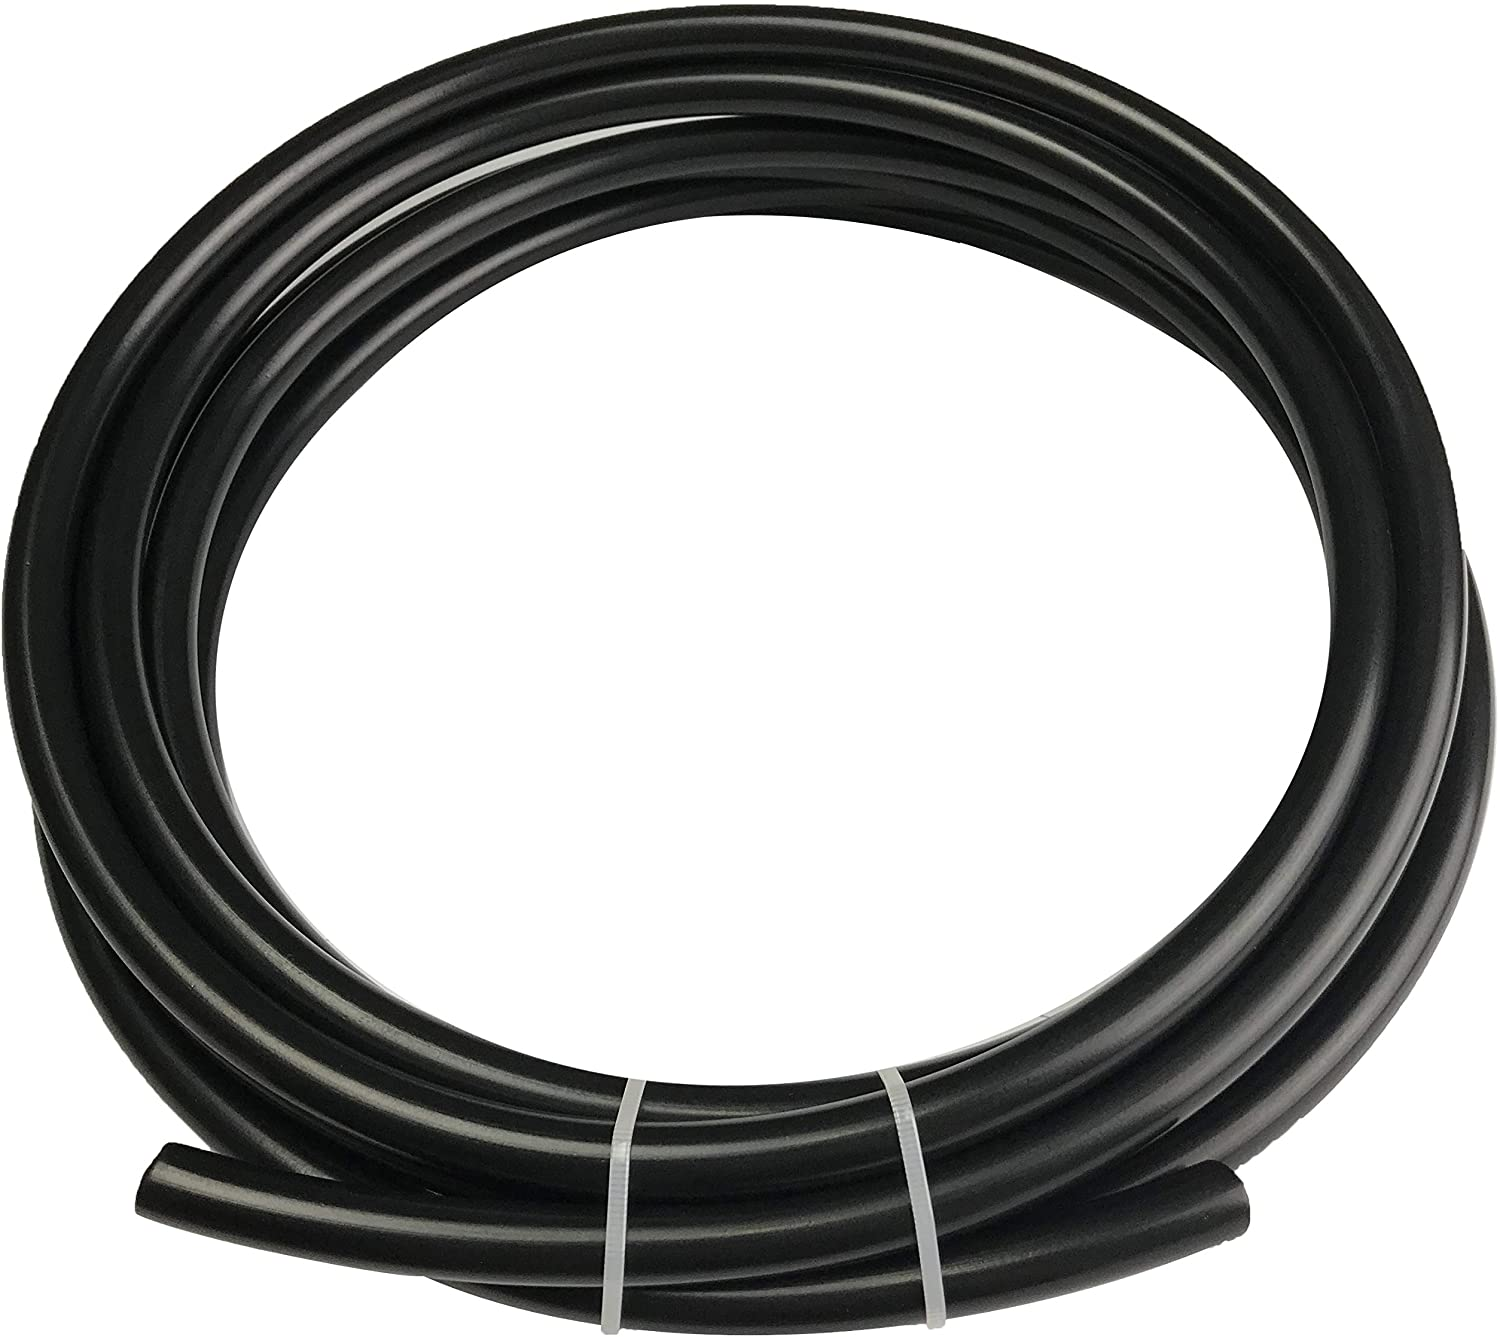 Nylone Tubing Fuel Line 3/16 OD Hose Vacuum Tube 1/8 ID Pneumatic Pipe Black for Air Brake System Or Fluid Transfer, Black 10 feet